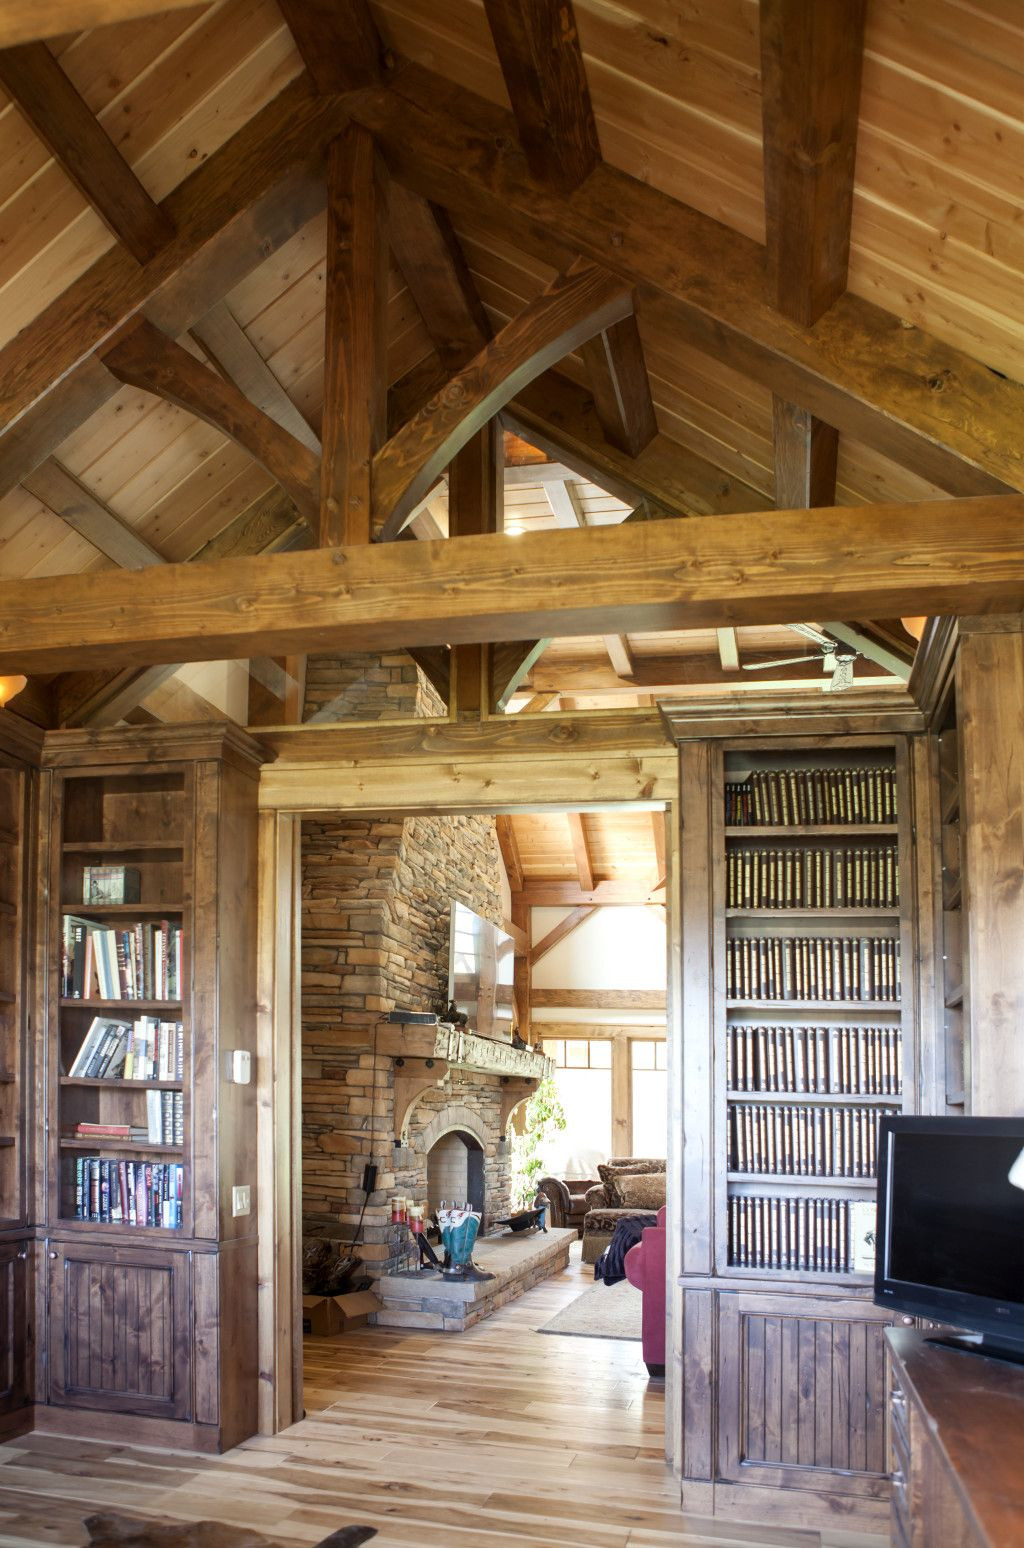 Luxury Timber Frame House Plans New top 20 Luxury Log Timber Frame and Hybrid Homes Of 2015